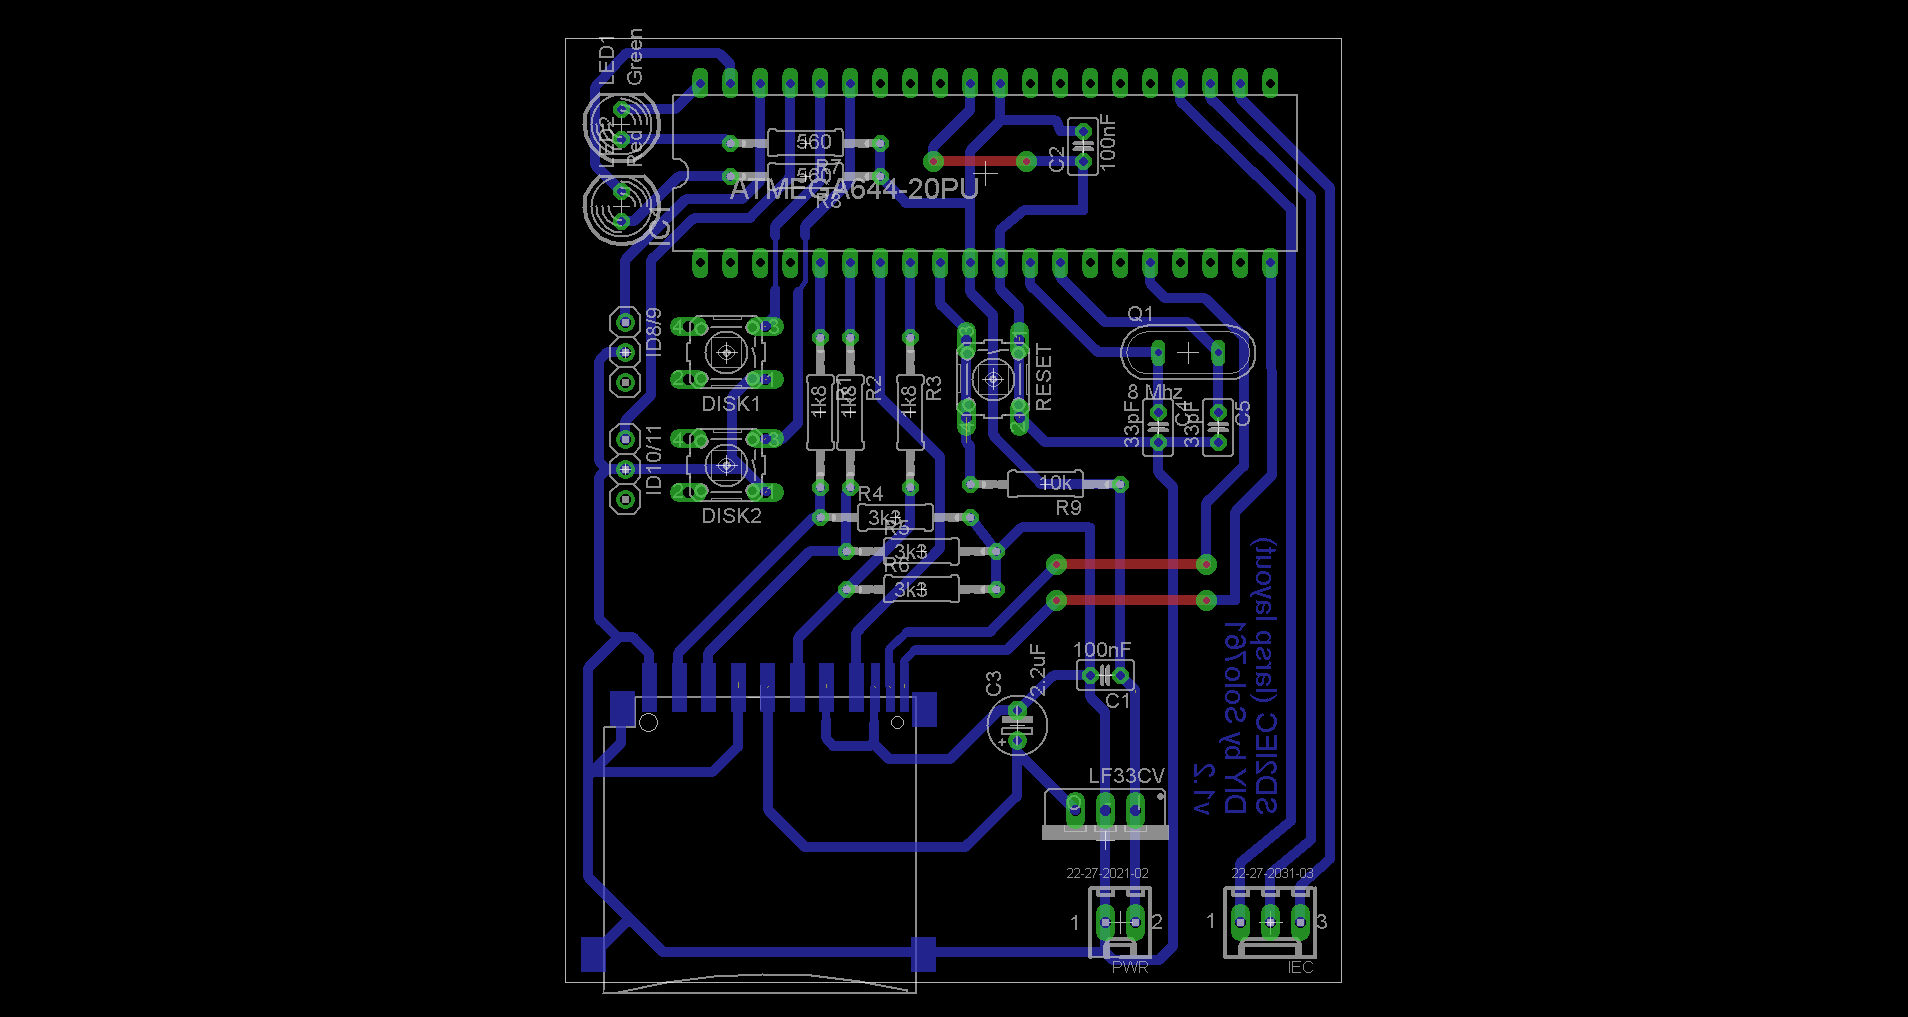 Sd2iec For Commodore 64 128 Diy 16bit Dust Electronic Circuit Diagram With Pcb Layout Board Using Lf33cv Voltage Regulator